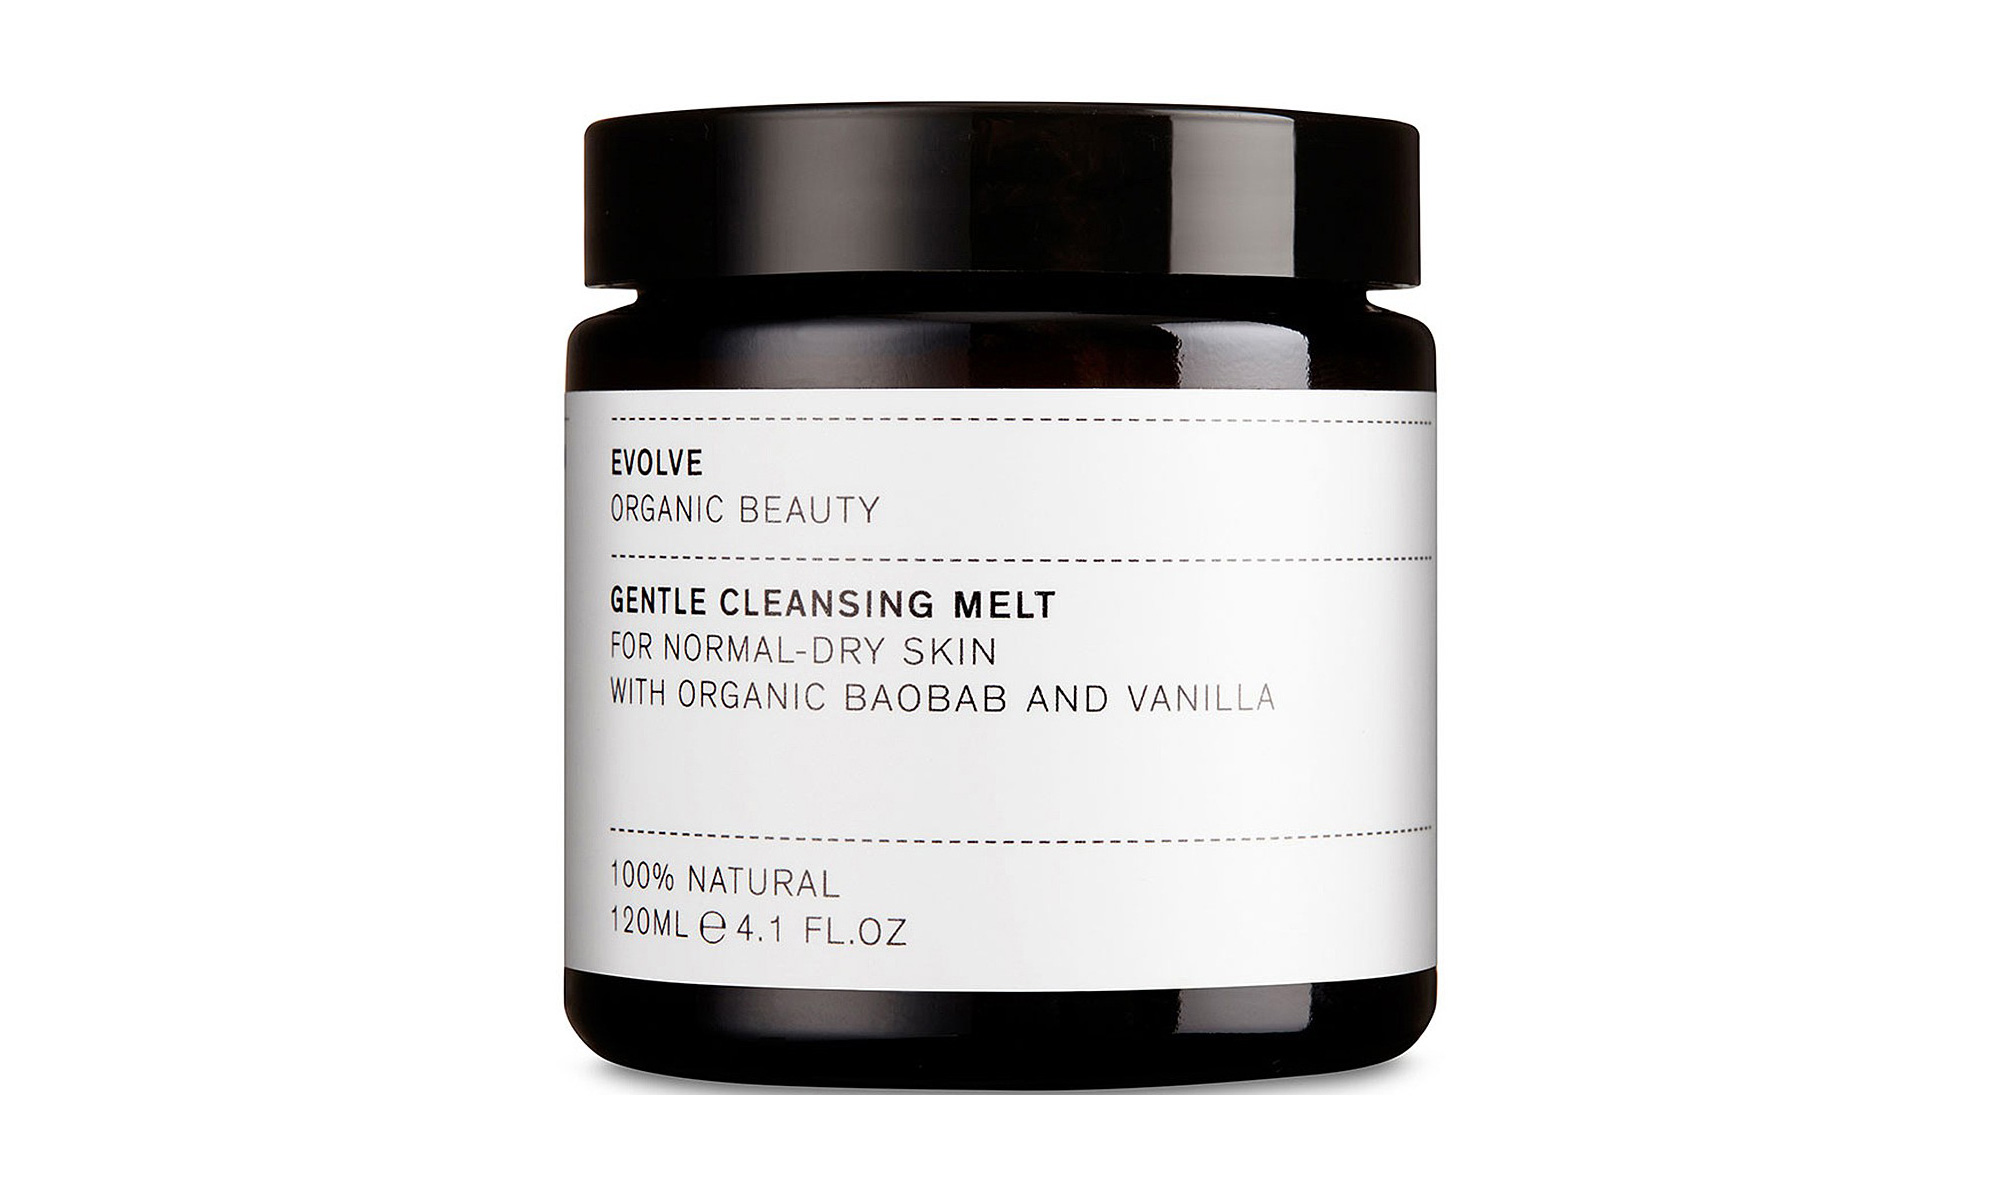 Our picks of Glycerine-centric products:  Gentle Cleansing Melt  by Evolve